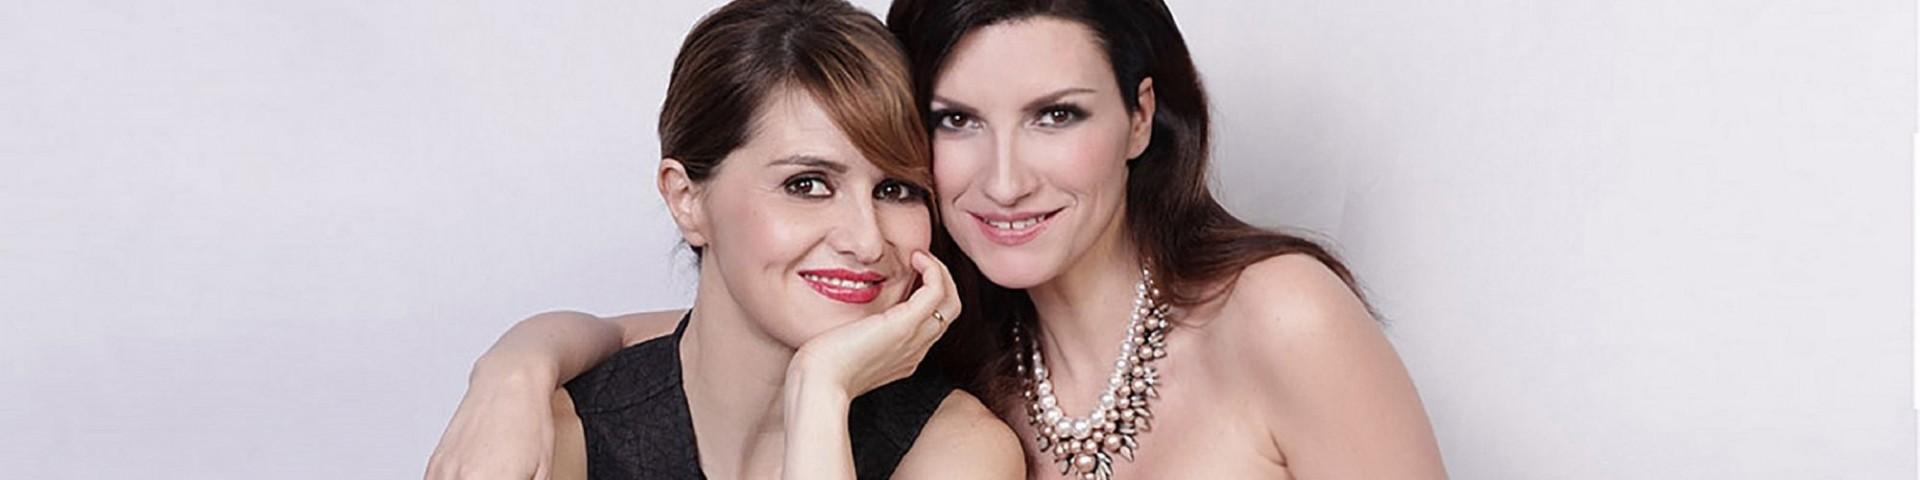 Laura Pausini e Paola Cortellesi in streaming: come vederle